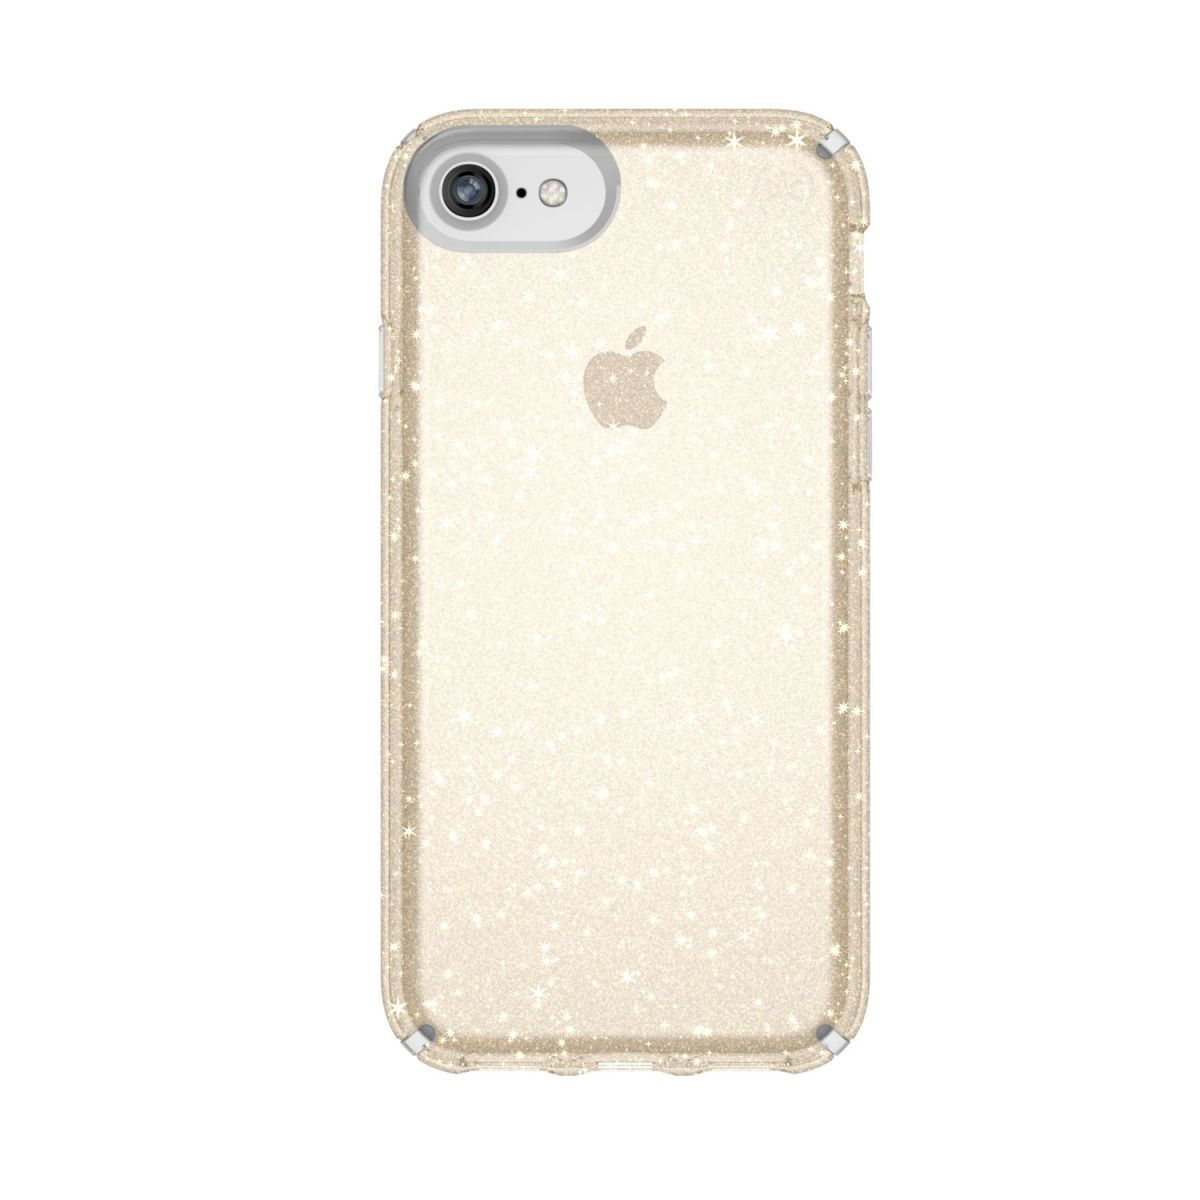 Carcasa iPhone 8/7/6/6s Plus Presidio Clear With Gold Glitter